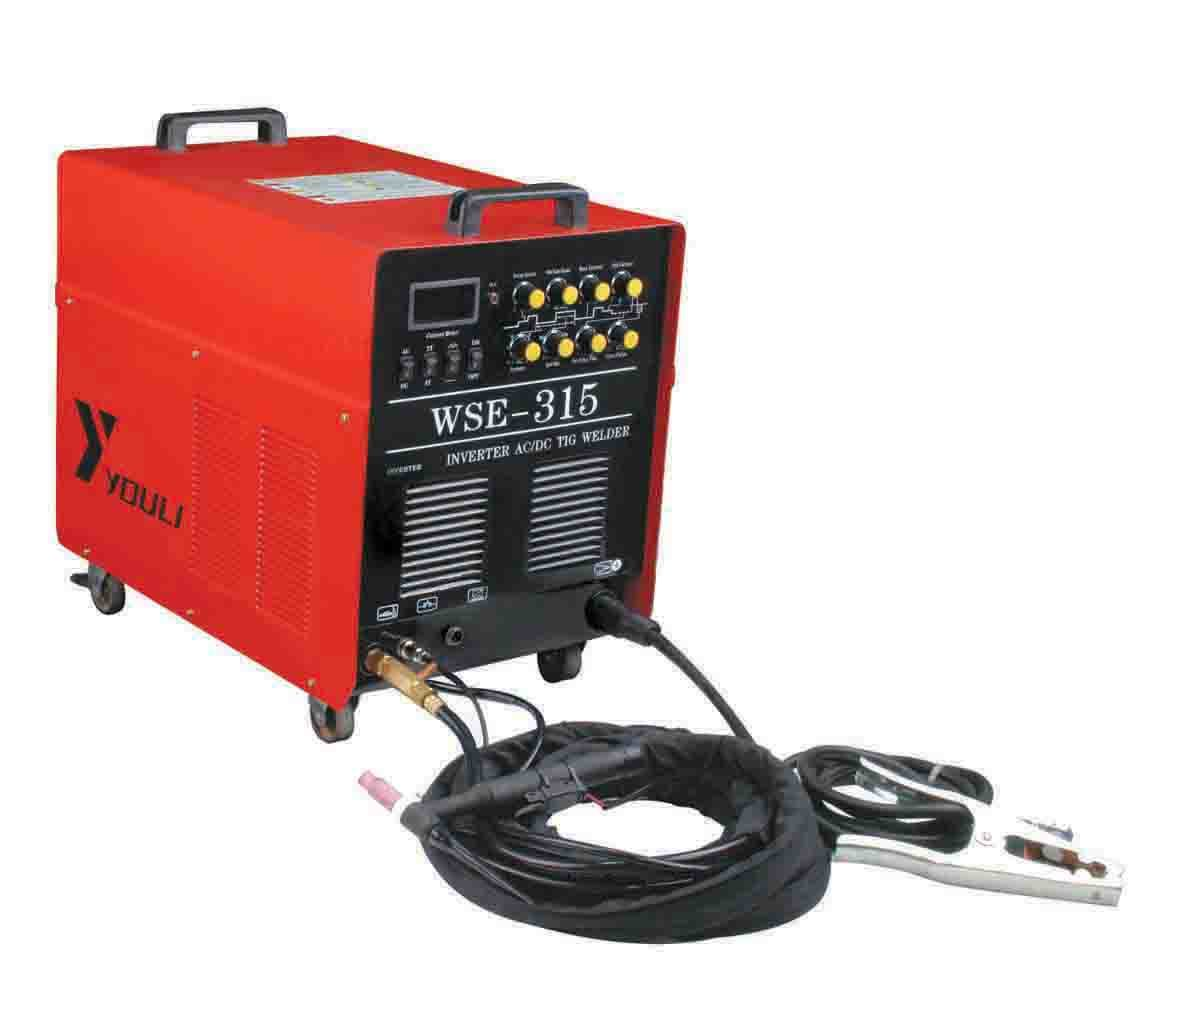 Inverter ac dc tig welding machine wse 315